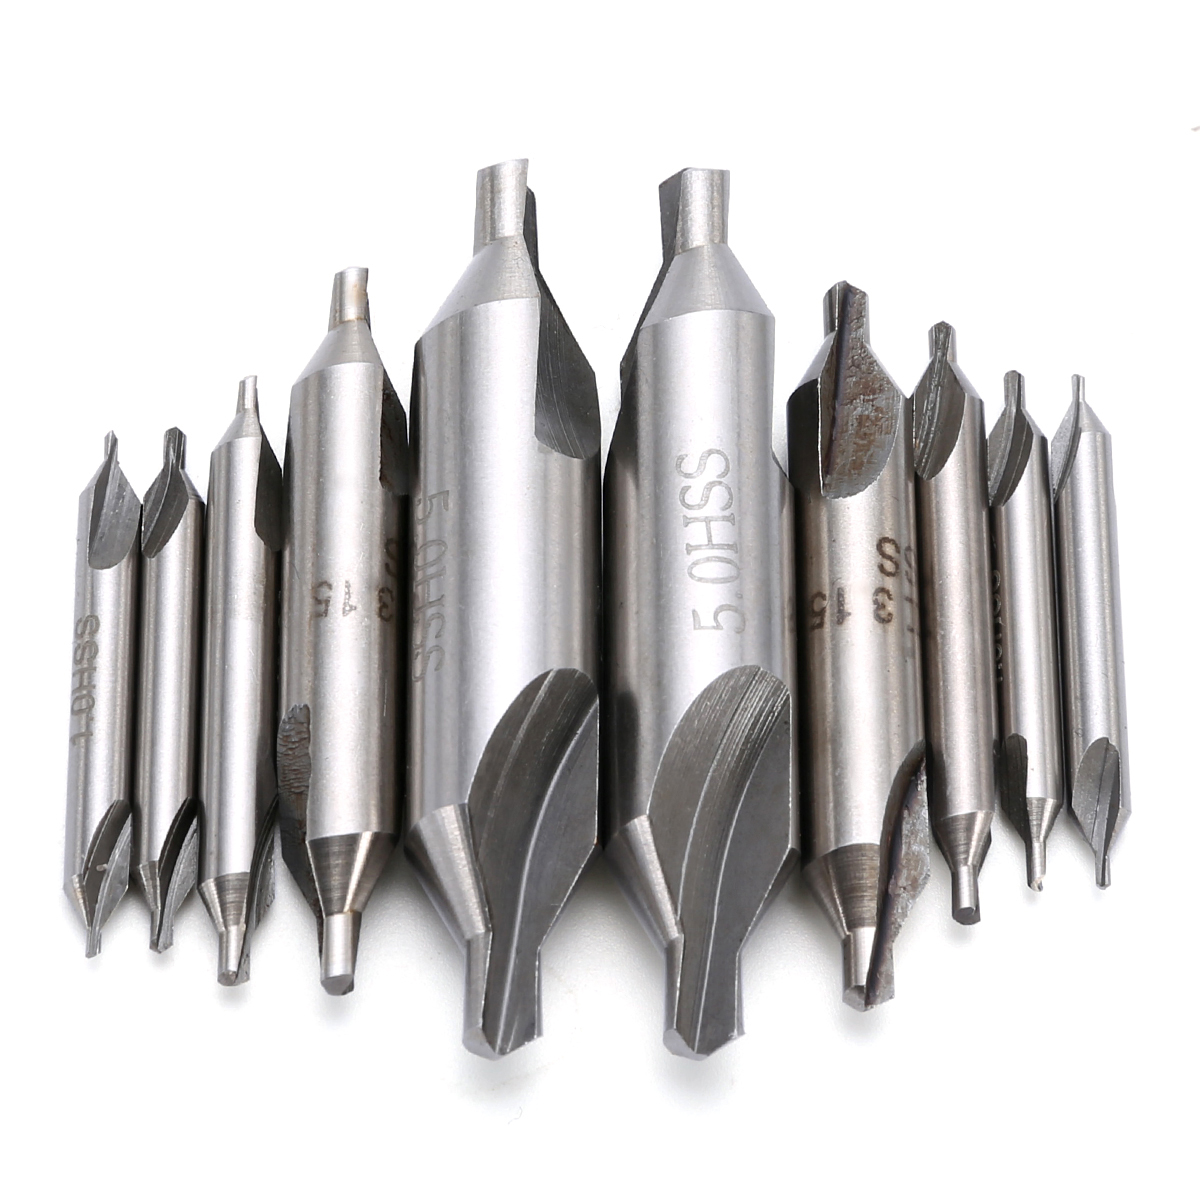 10Pcs High Speed Steel Center Drills Combined Countersink Bits  60 Degree For Drilling Tools 1/1.5/2/3.15/5mm